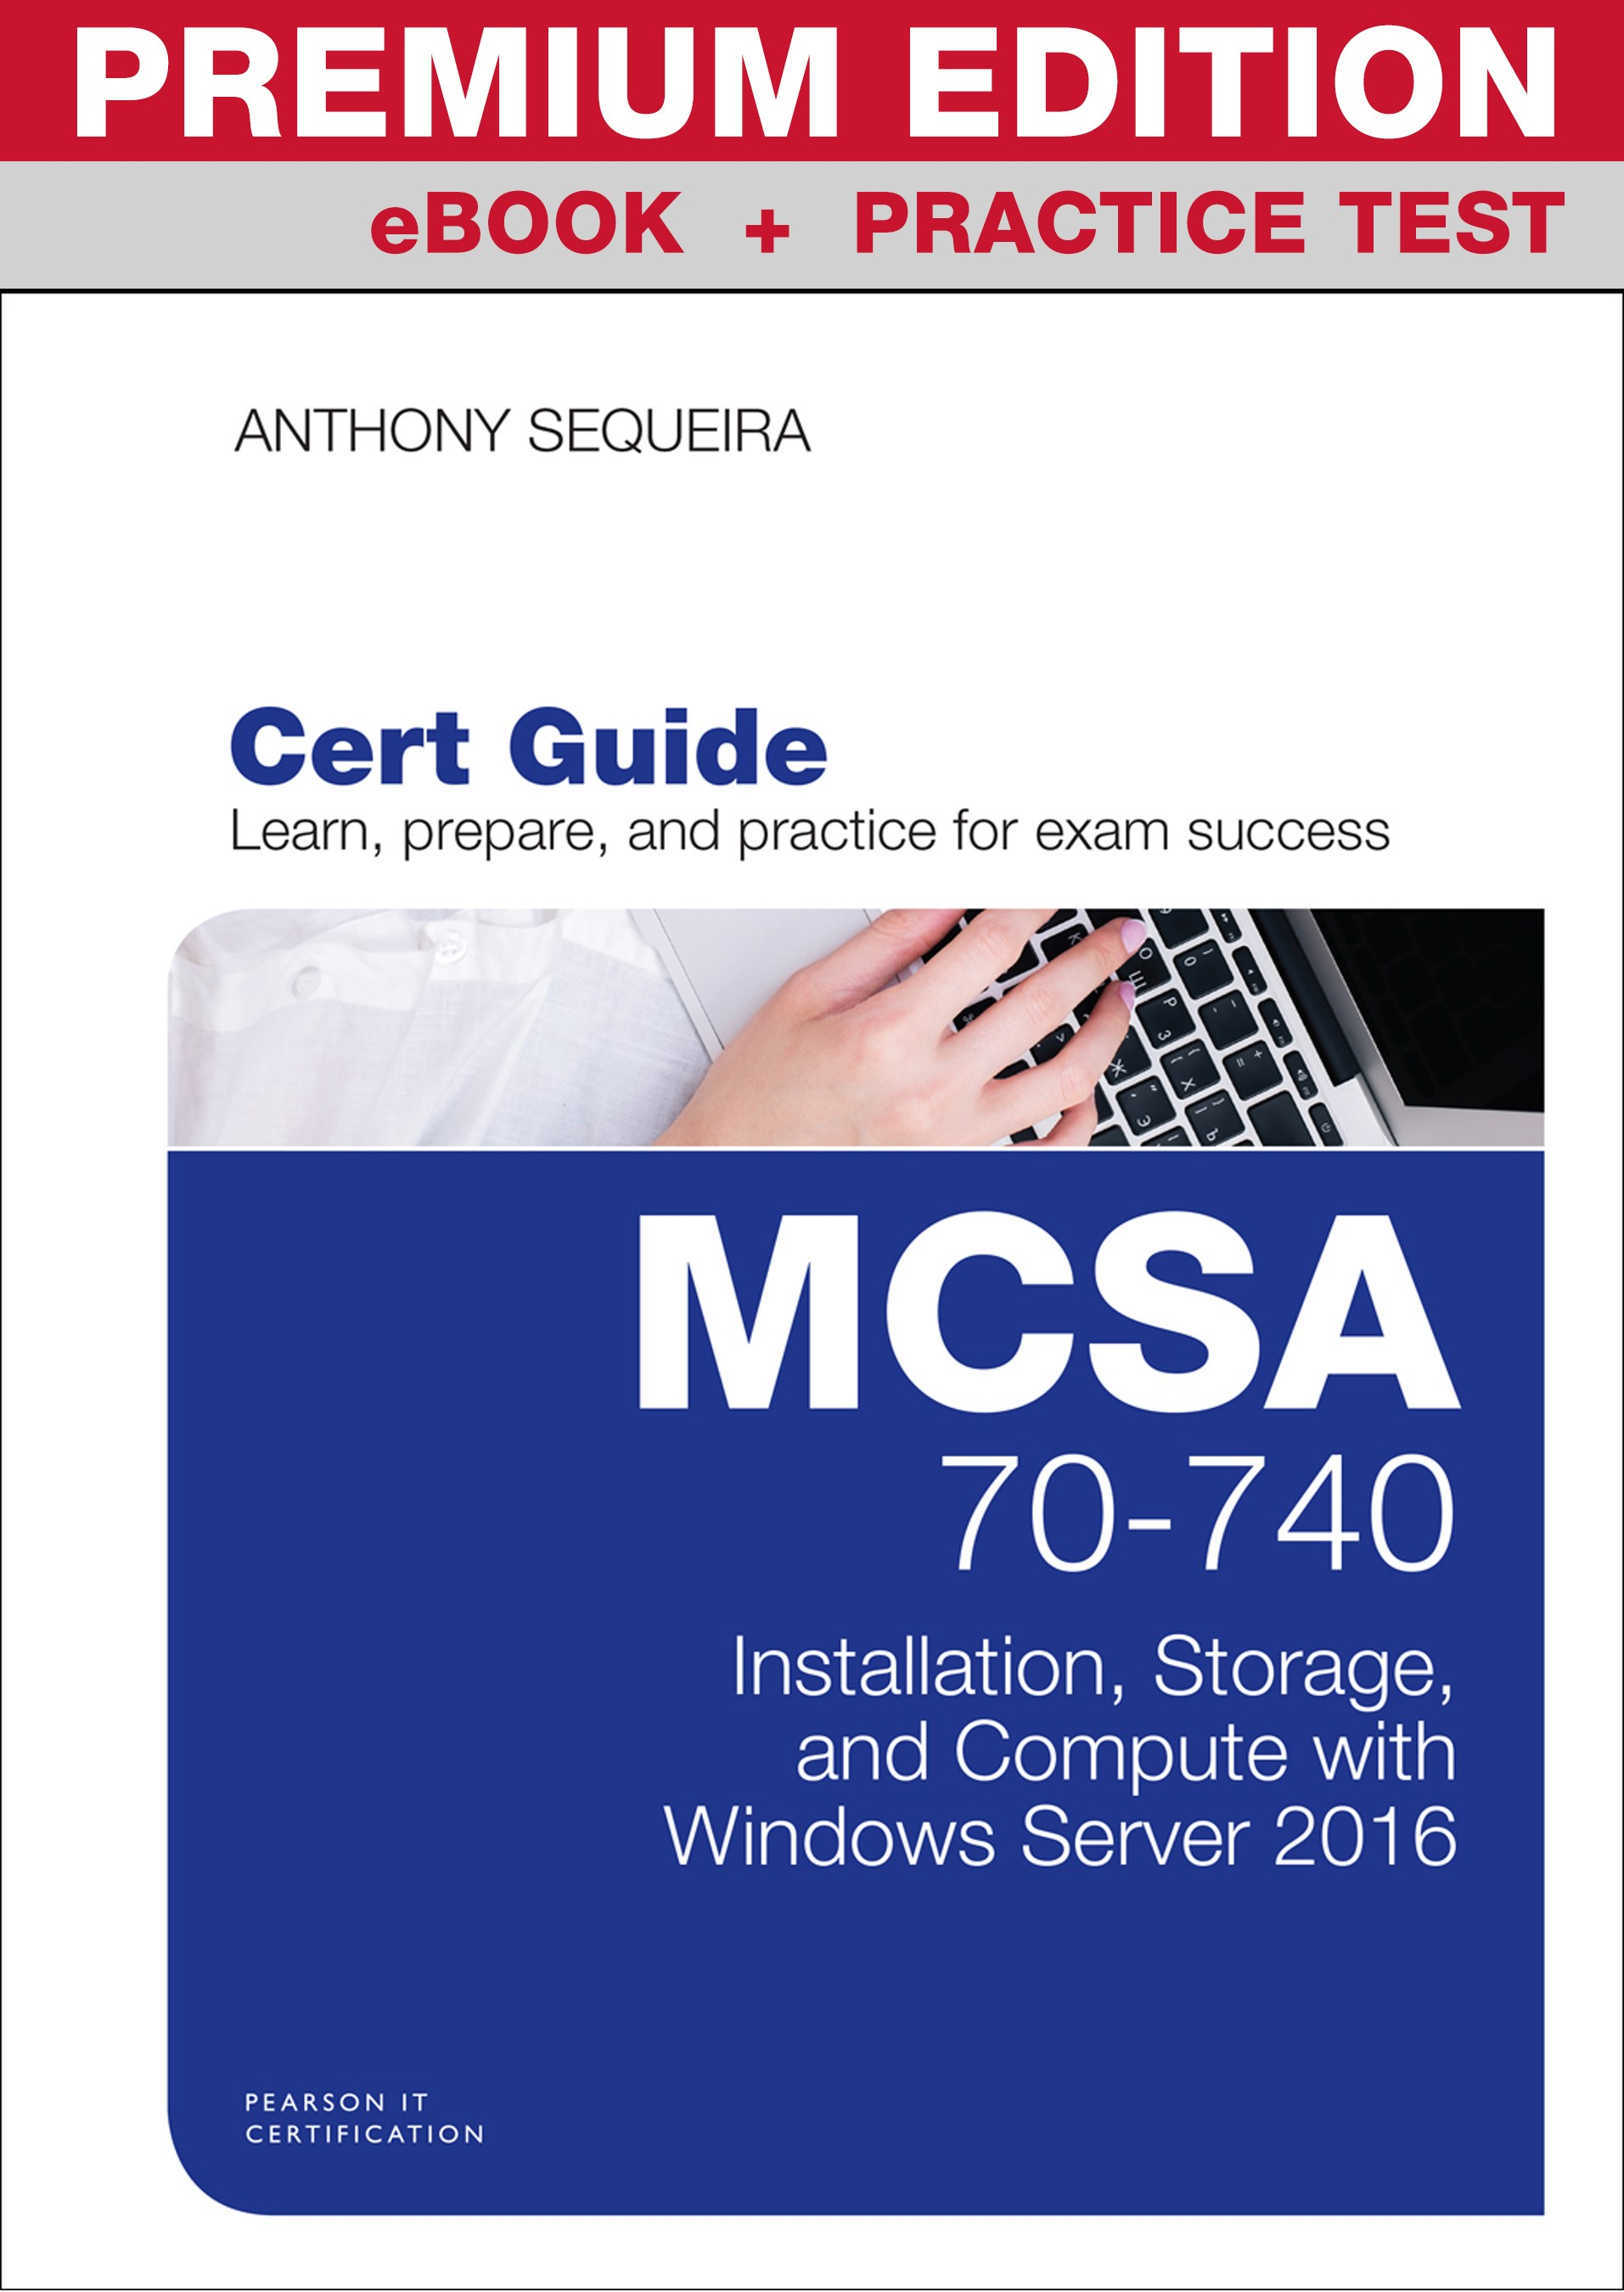 MCSA 70-740 Cert Guide Premium Edition and Practice Tests